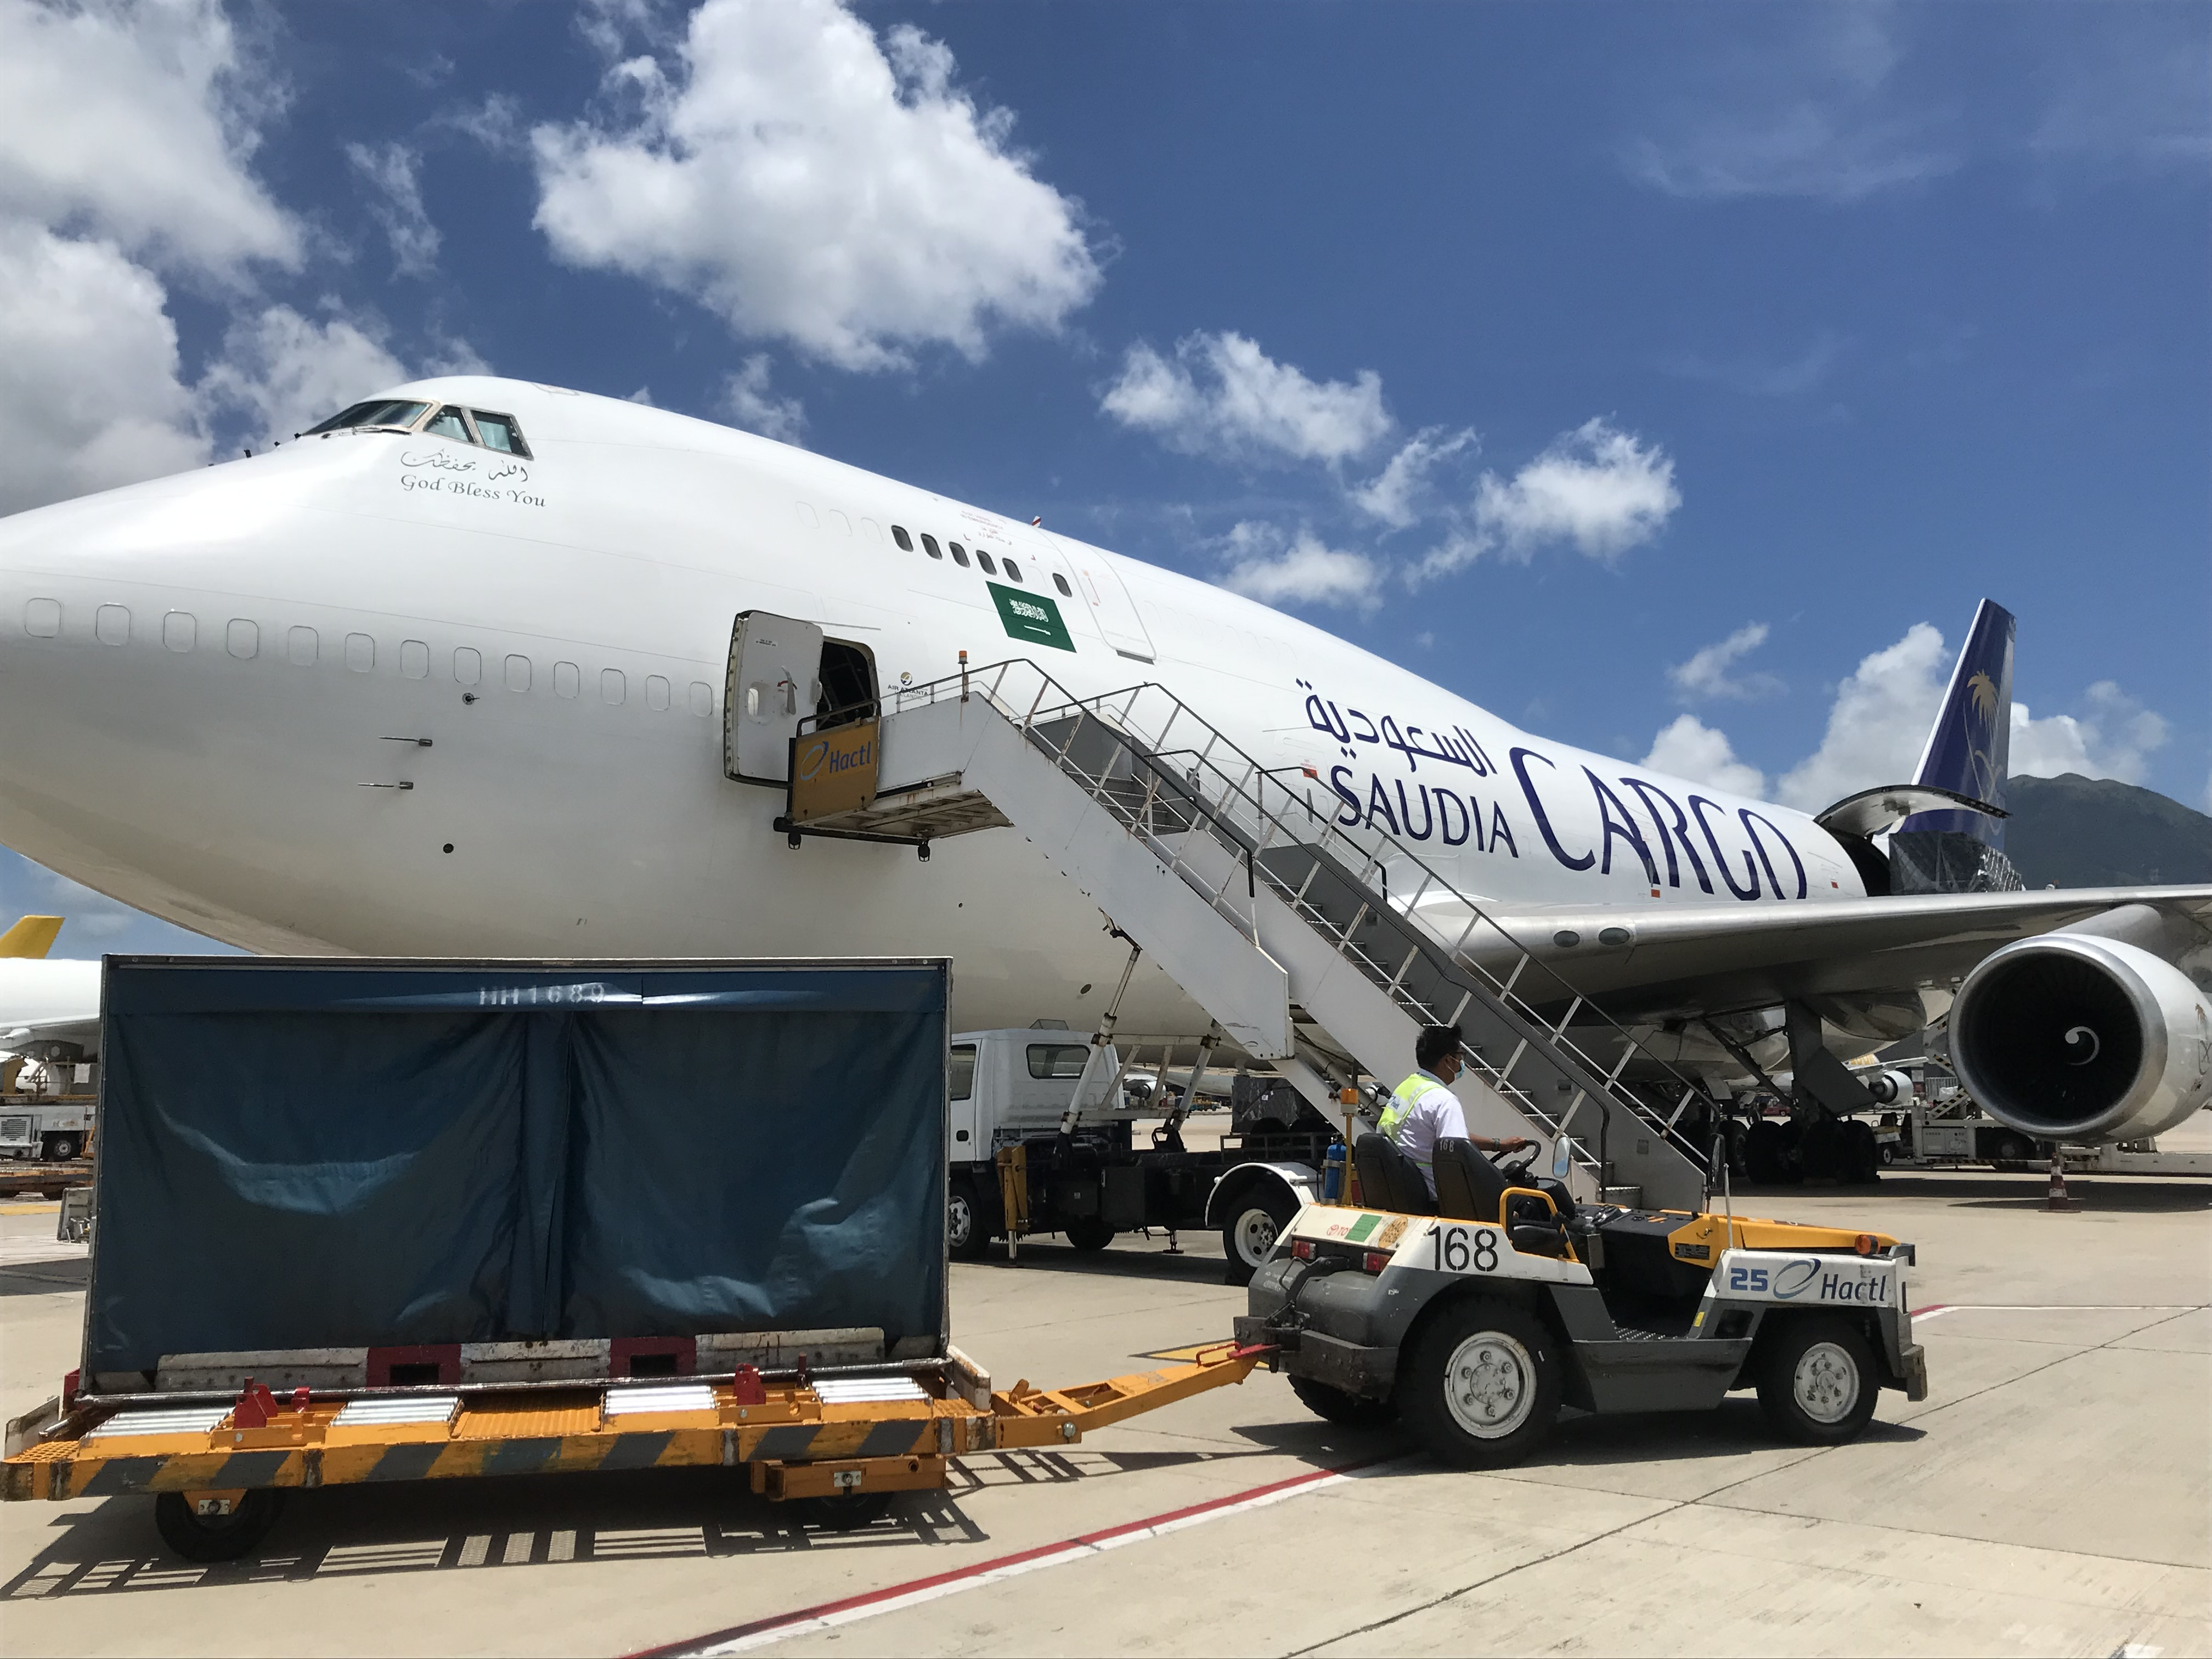 Hactl commended by Saudia Cargo for outstanding performance